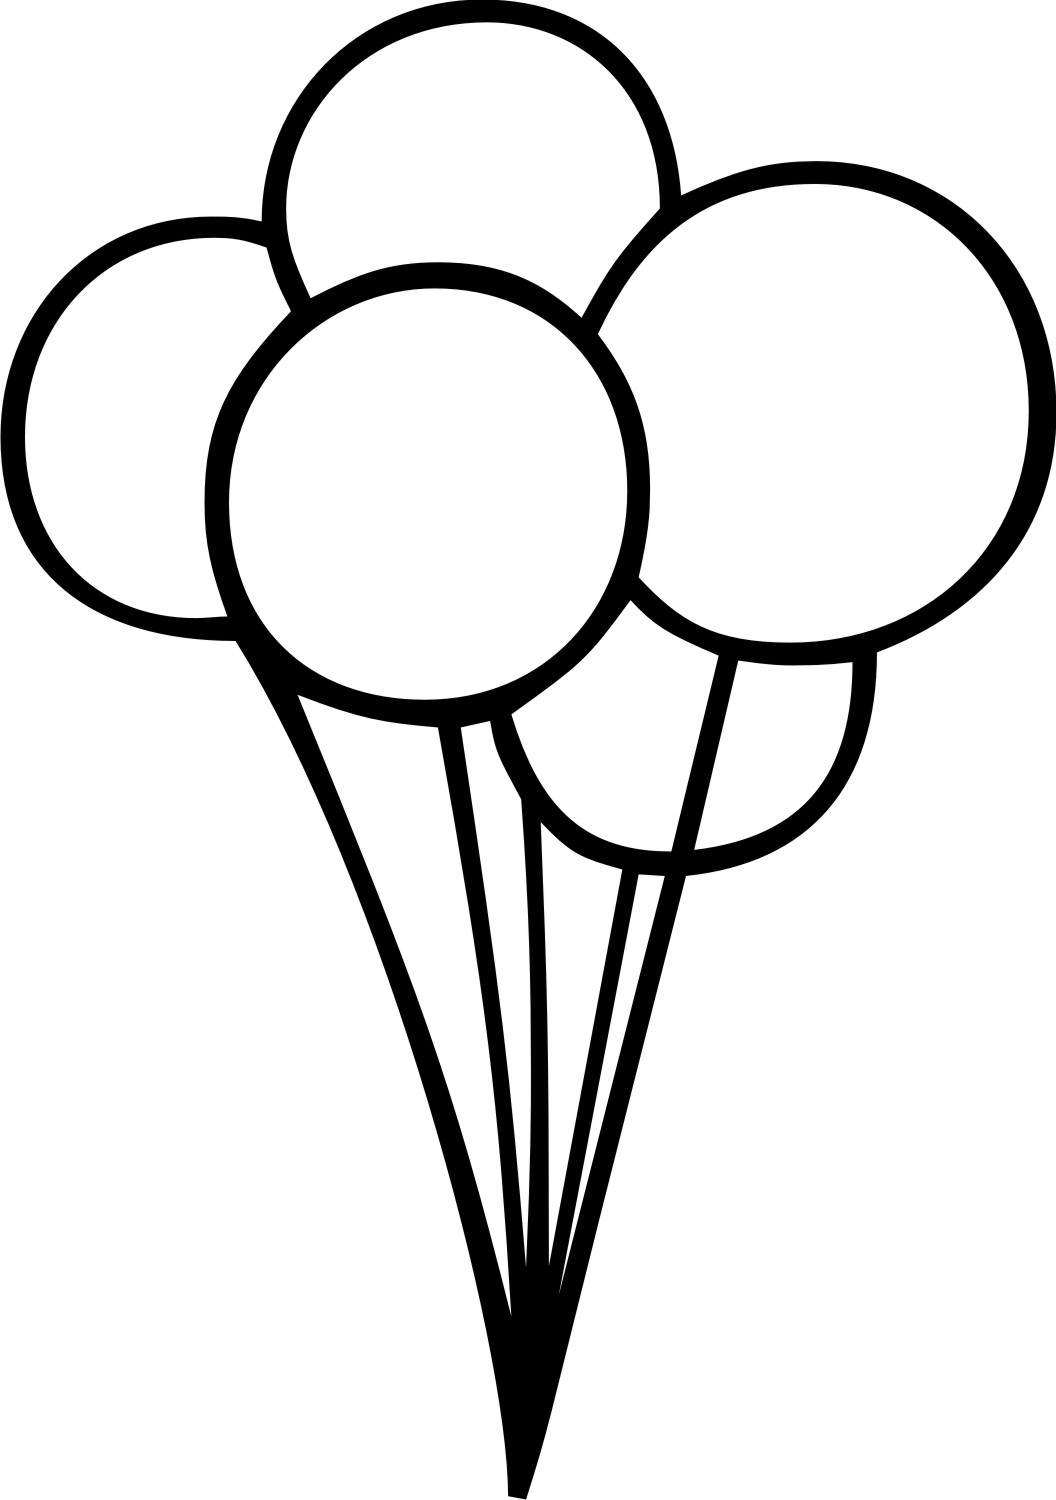 1056x1500 Balloon Black And White Clipart 1945510